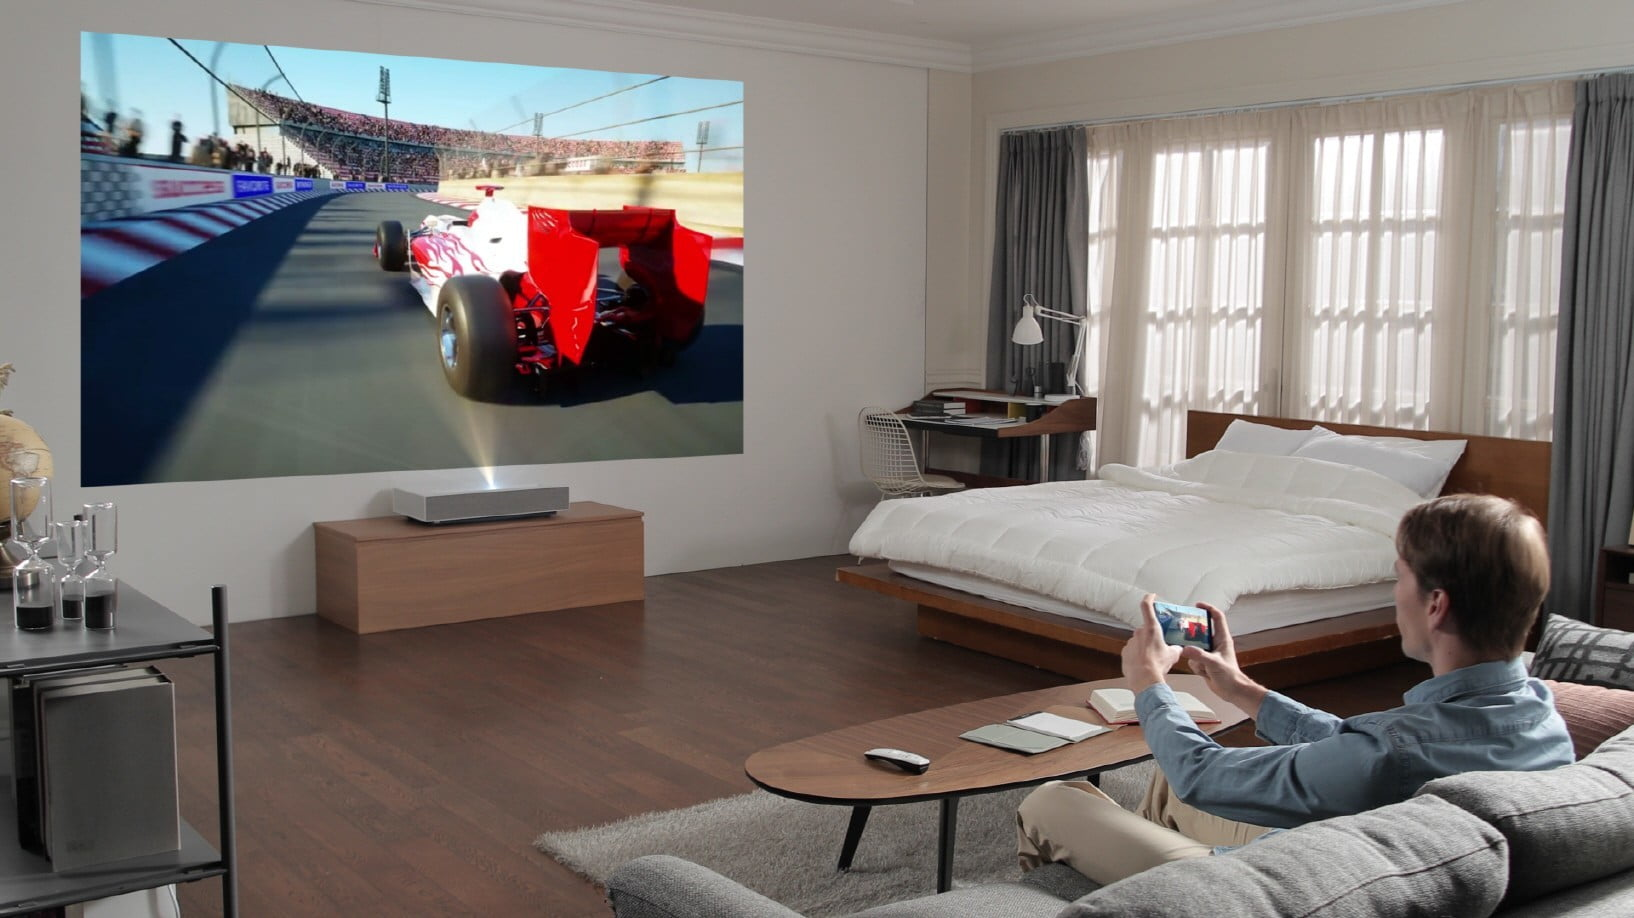 LG's new Cinebeam laser projector creates a 90-inch screen from 2 inches away